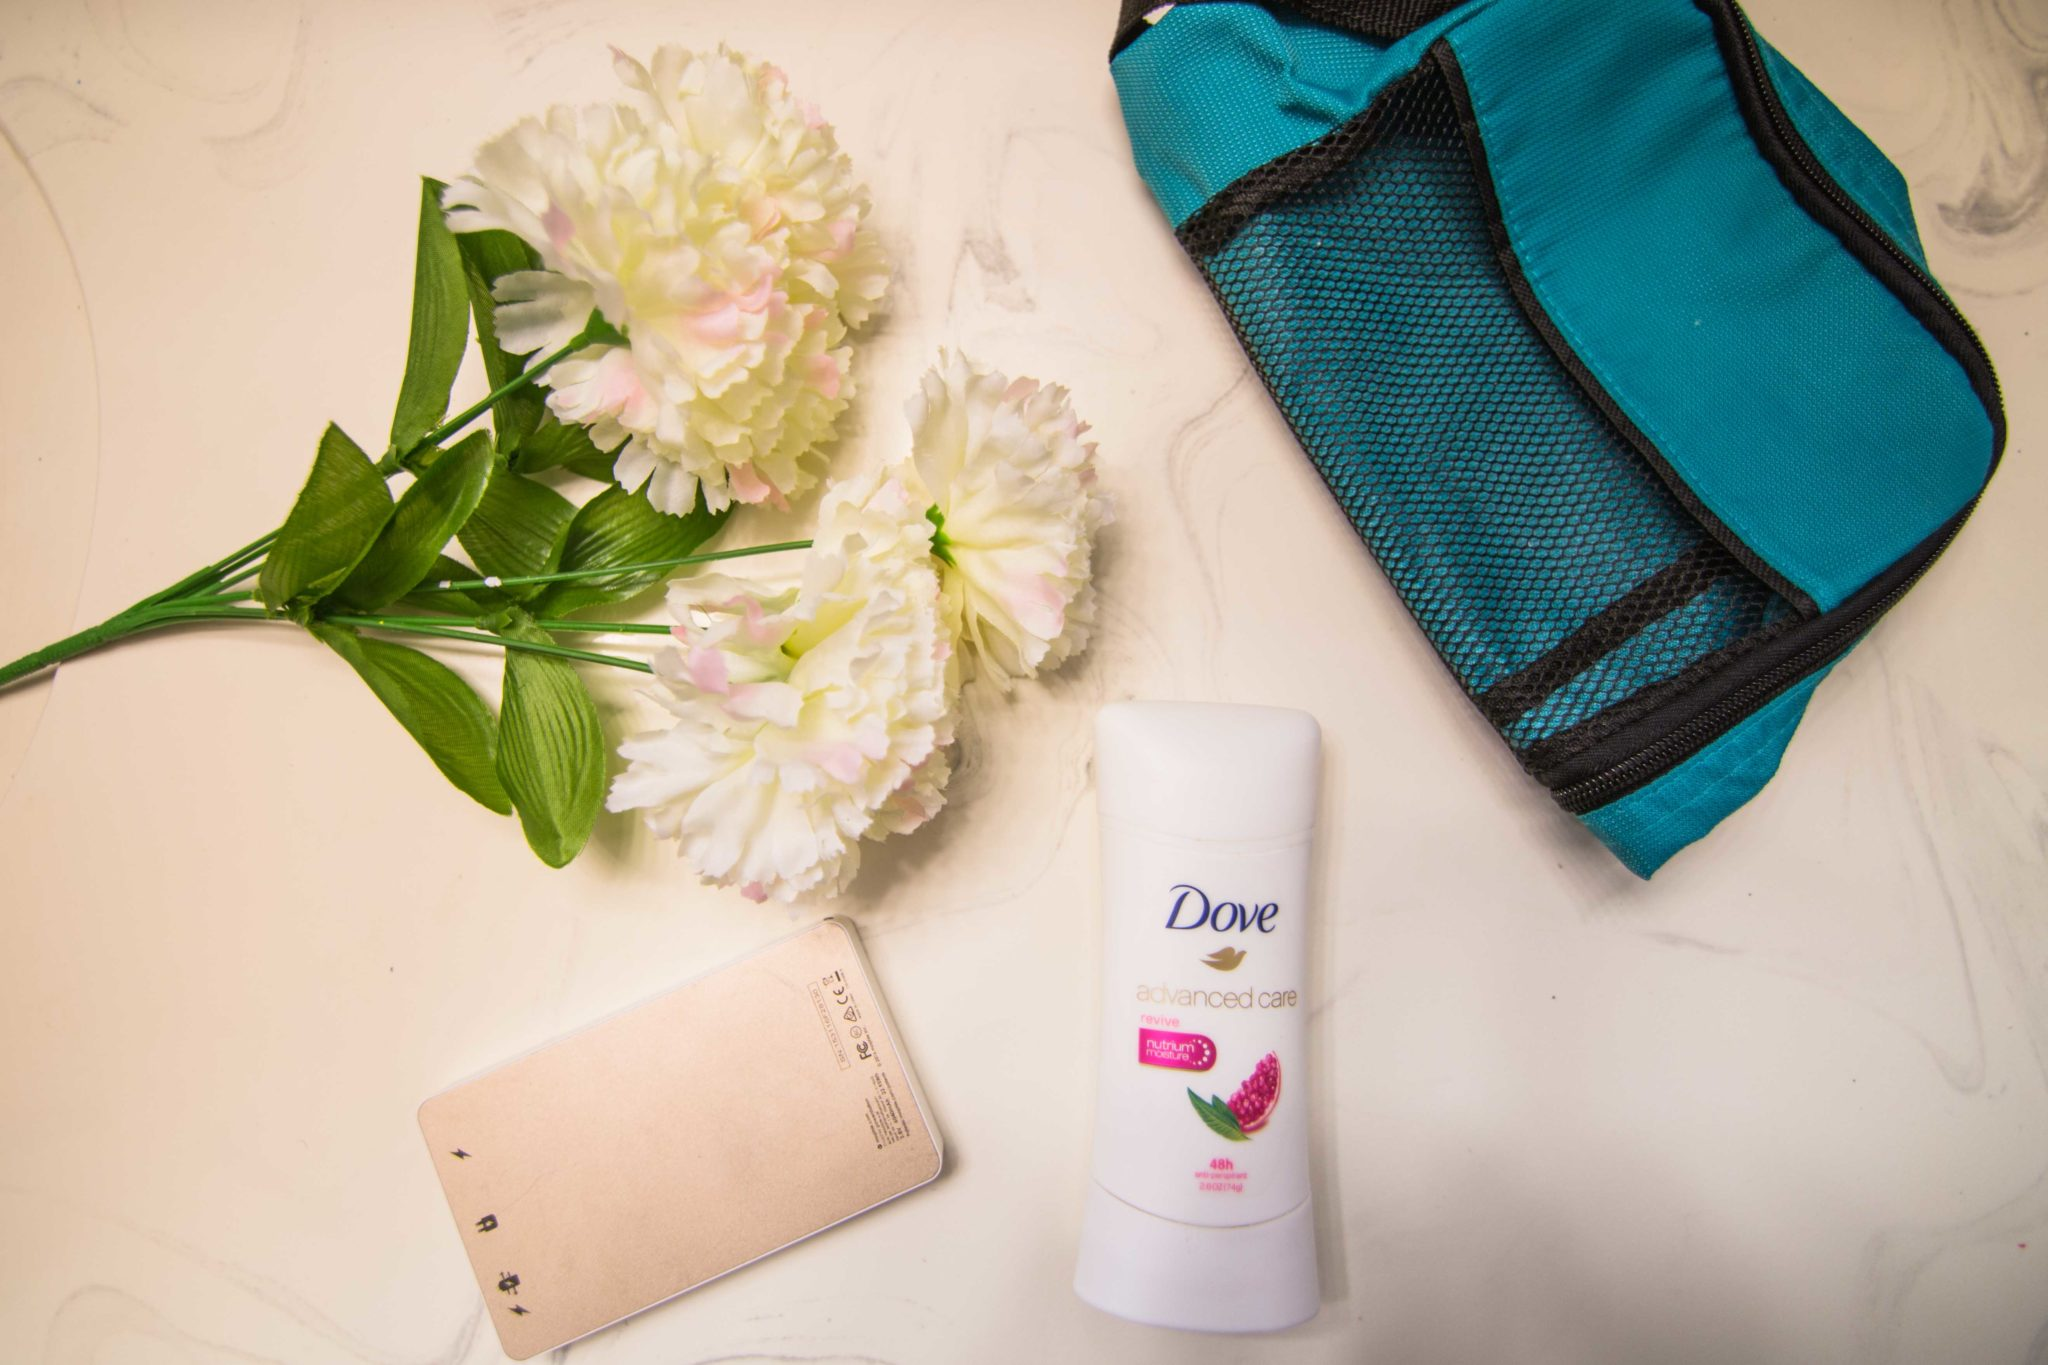 Dove Deodorant Travel Essential